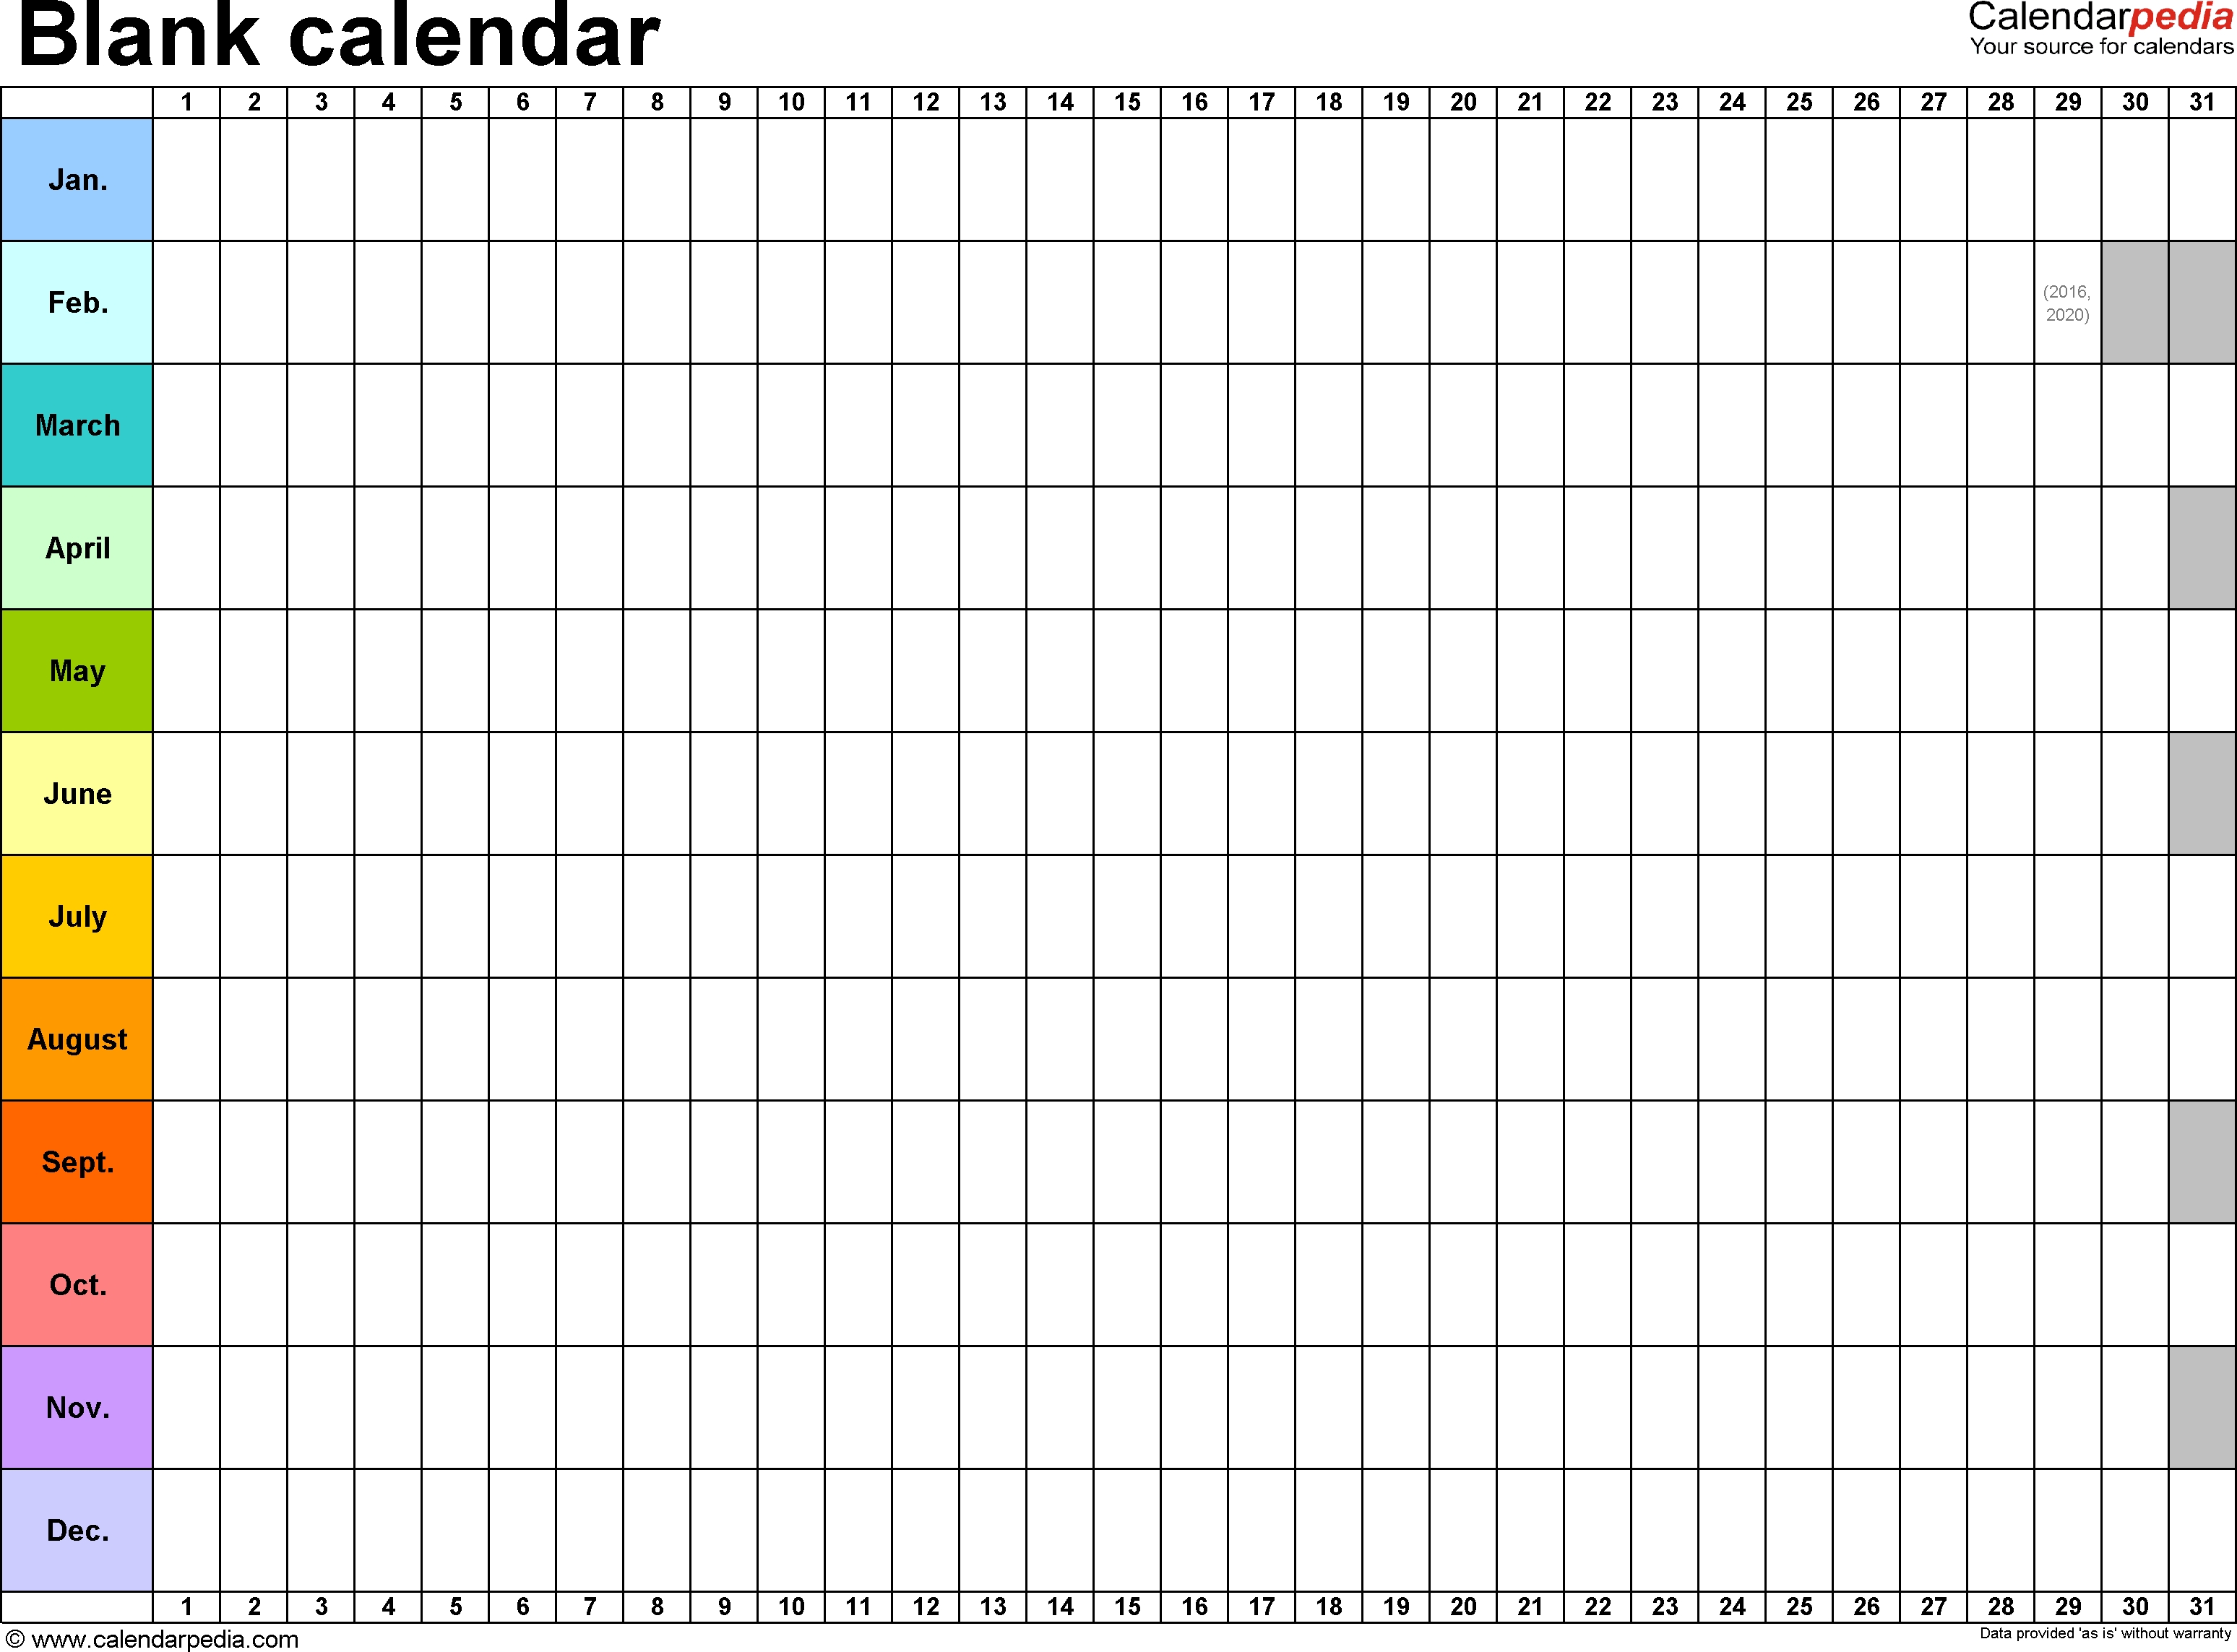 Monthly Schedule Template Blank Calendar Free Printable Icrosoft throughout Free Printable Blank Monthly Calendar Templates